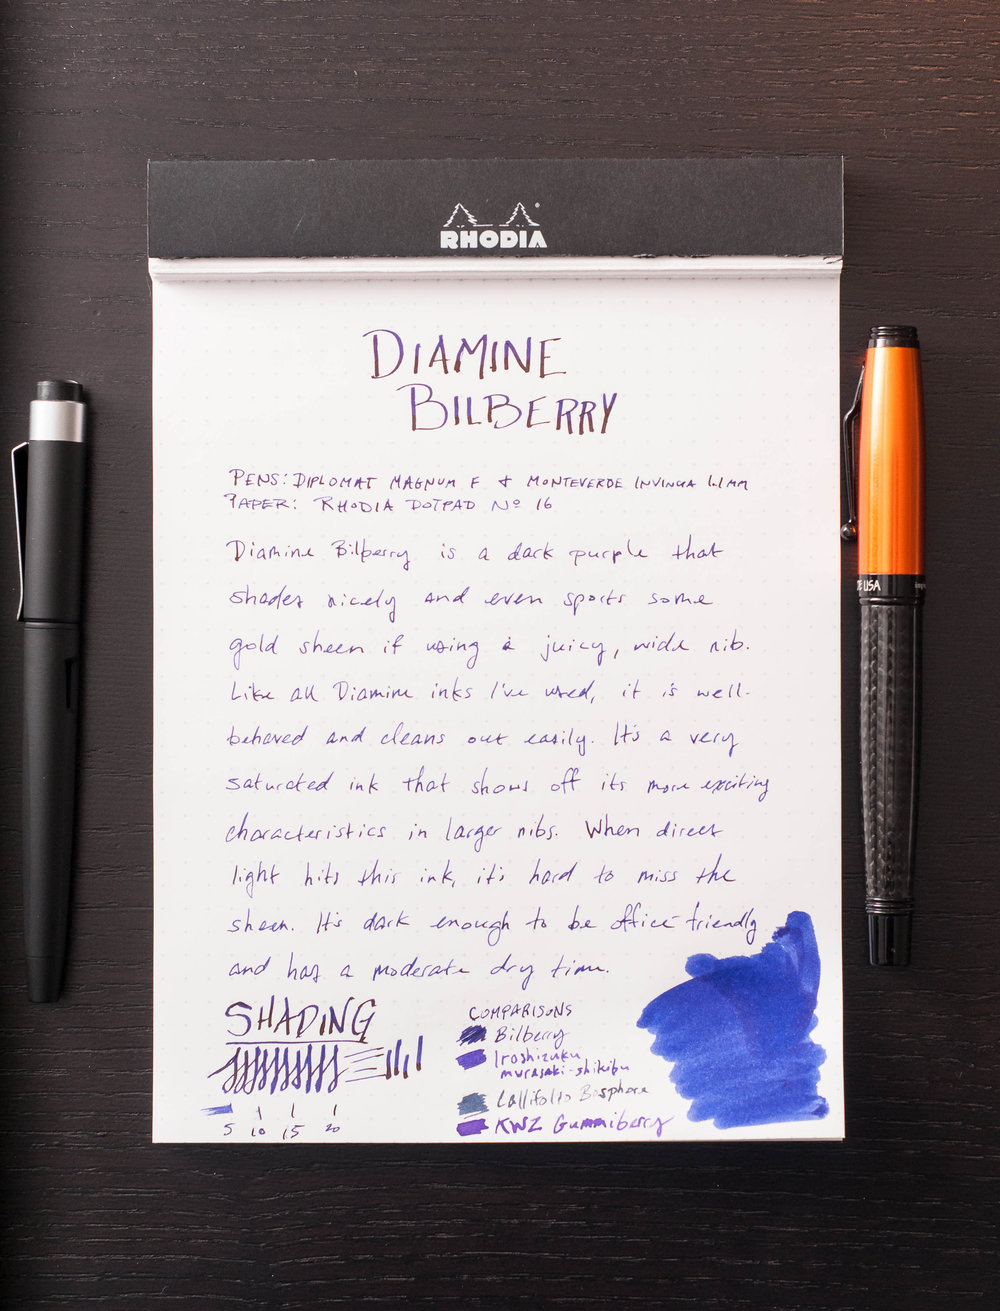 Diamine Bilberry Review